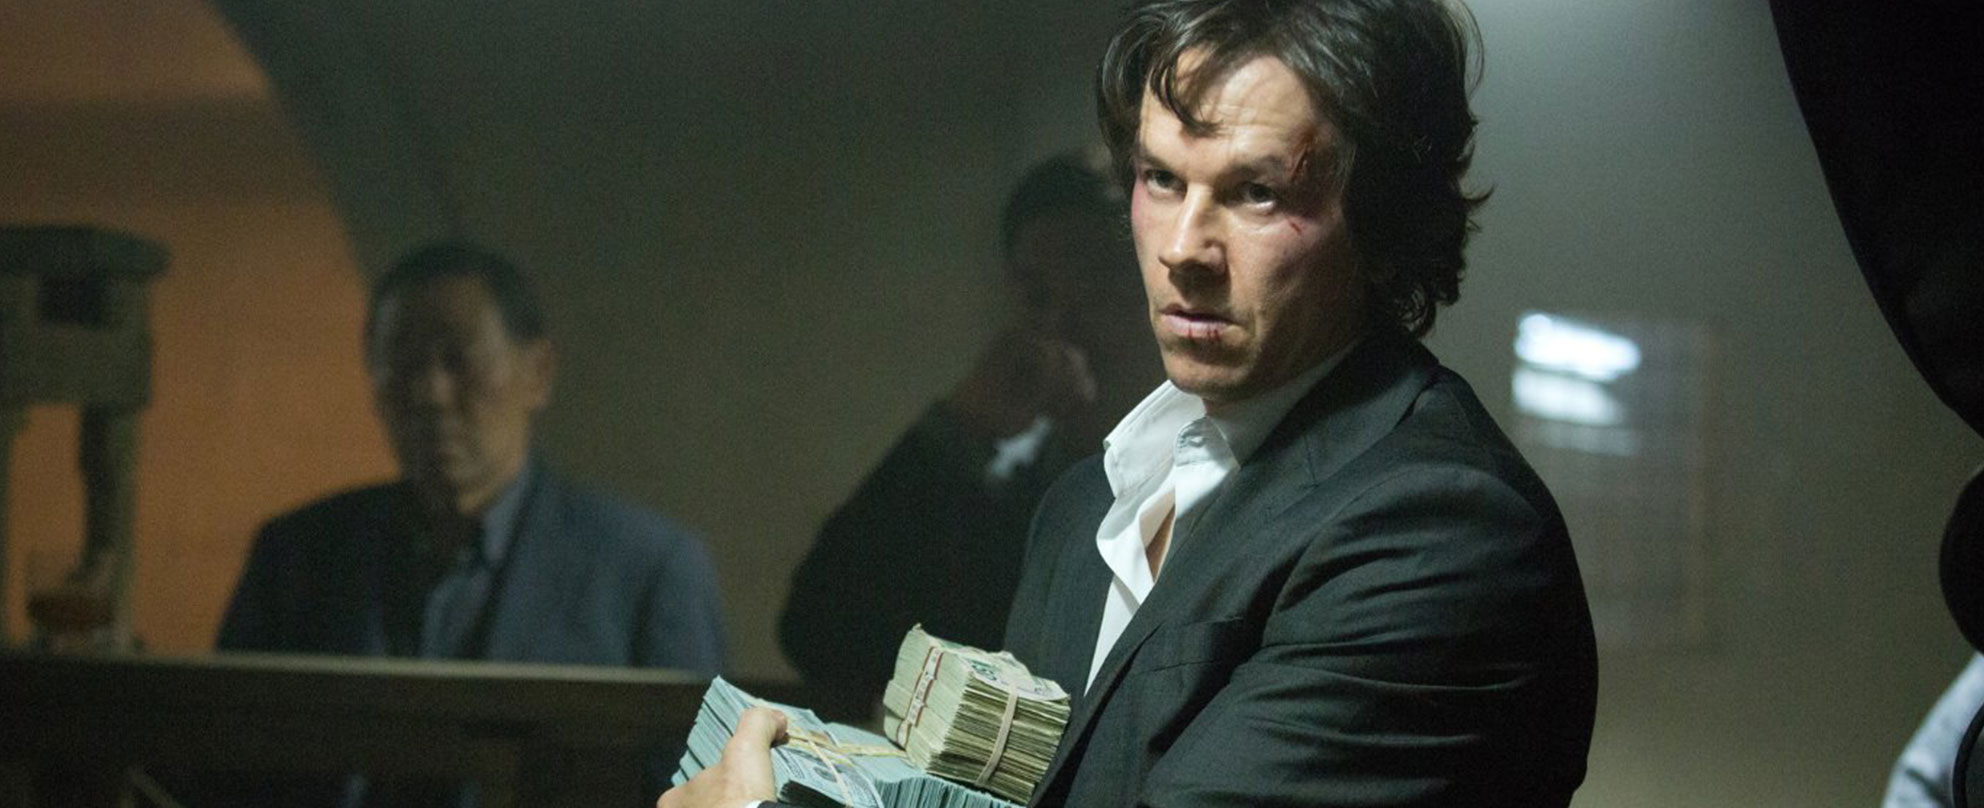 Mark Wahlberg in The Gambler film